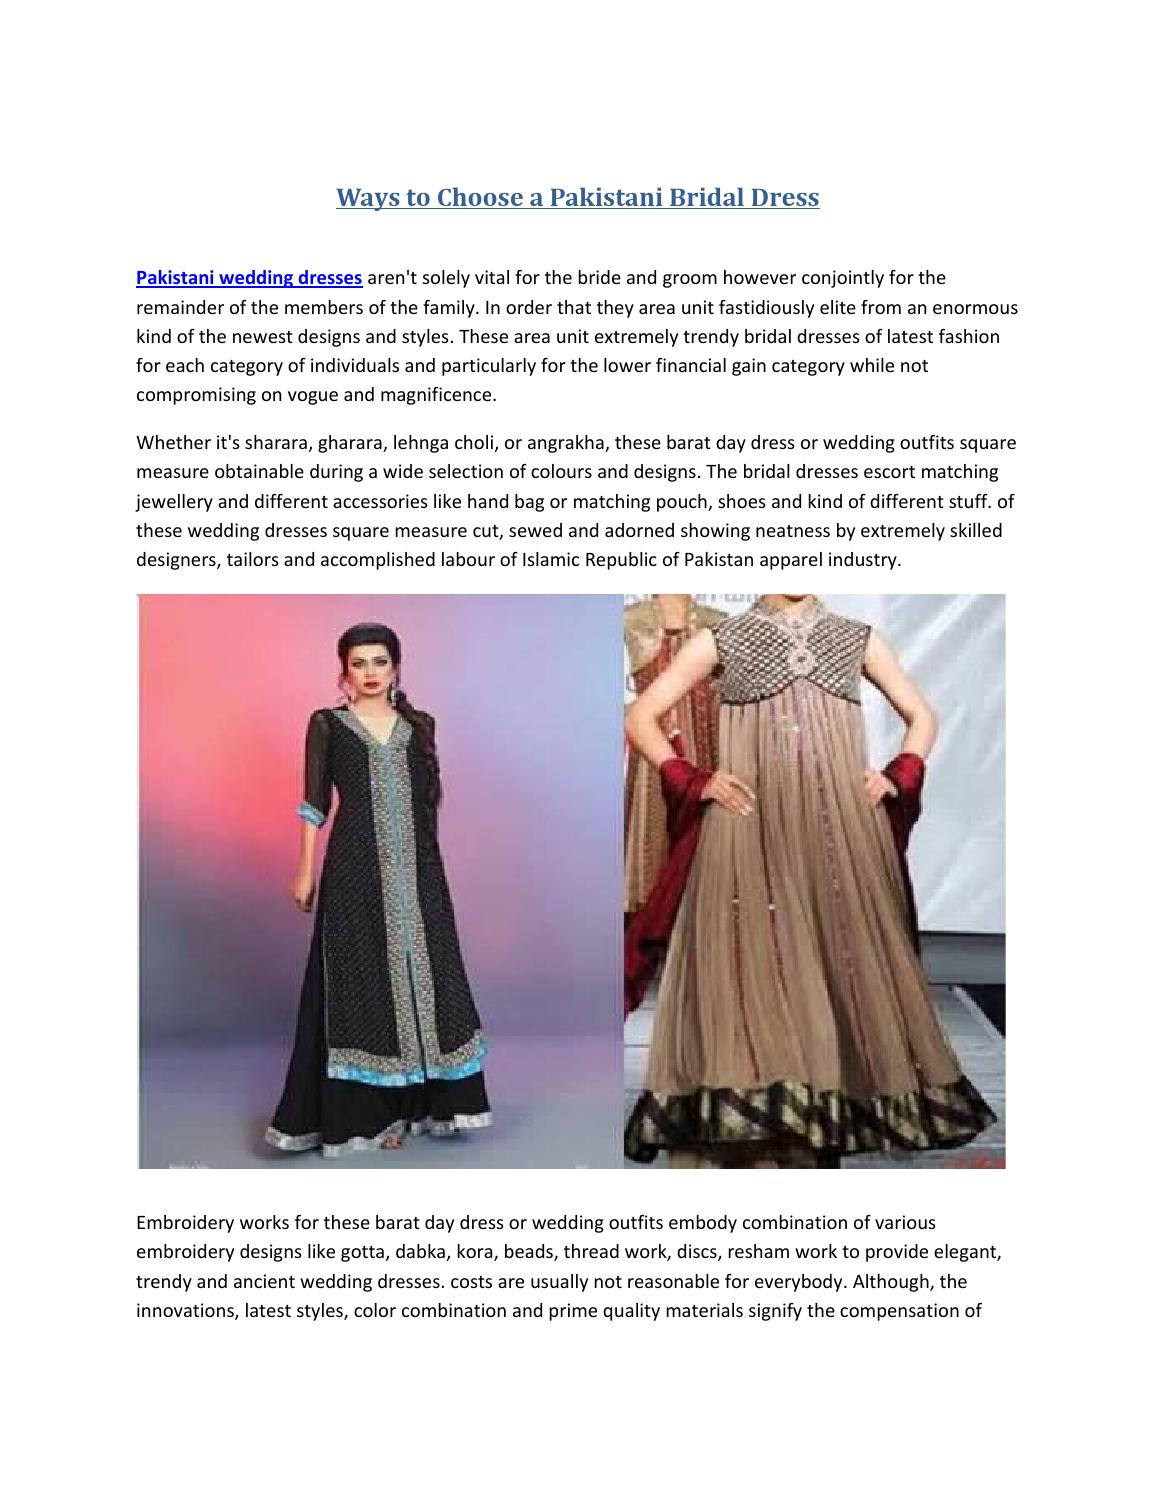 Ways To Choose A Pakistani Bridal Dress By Exclusiveinn Issuu,Design Thinking Video